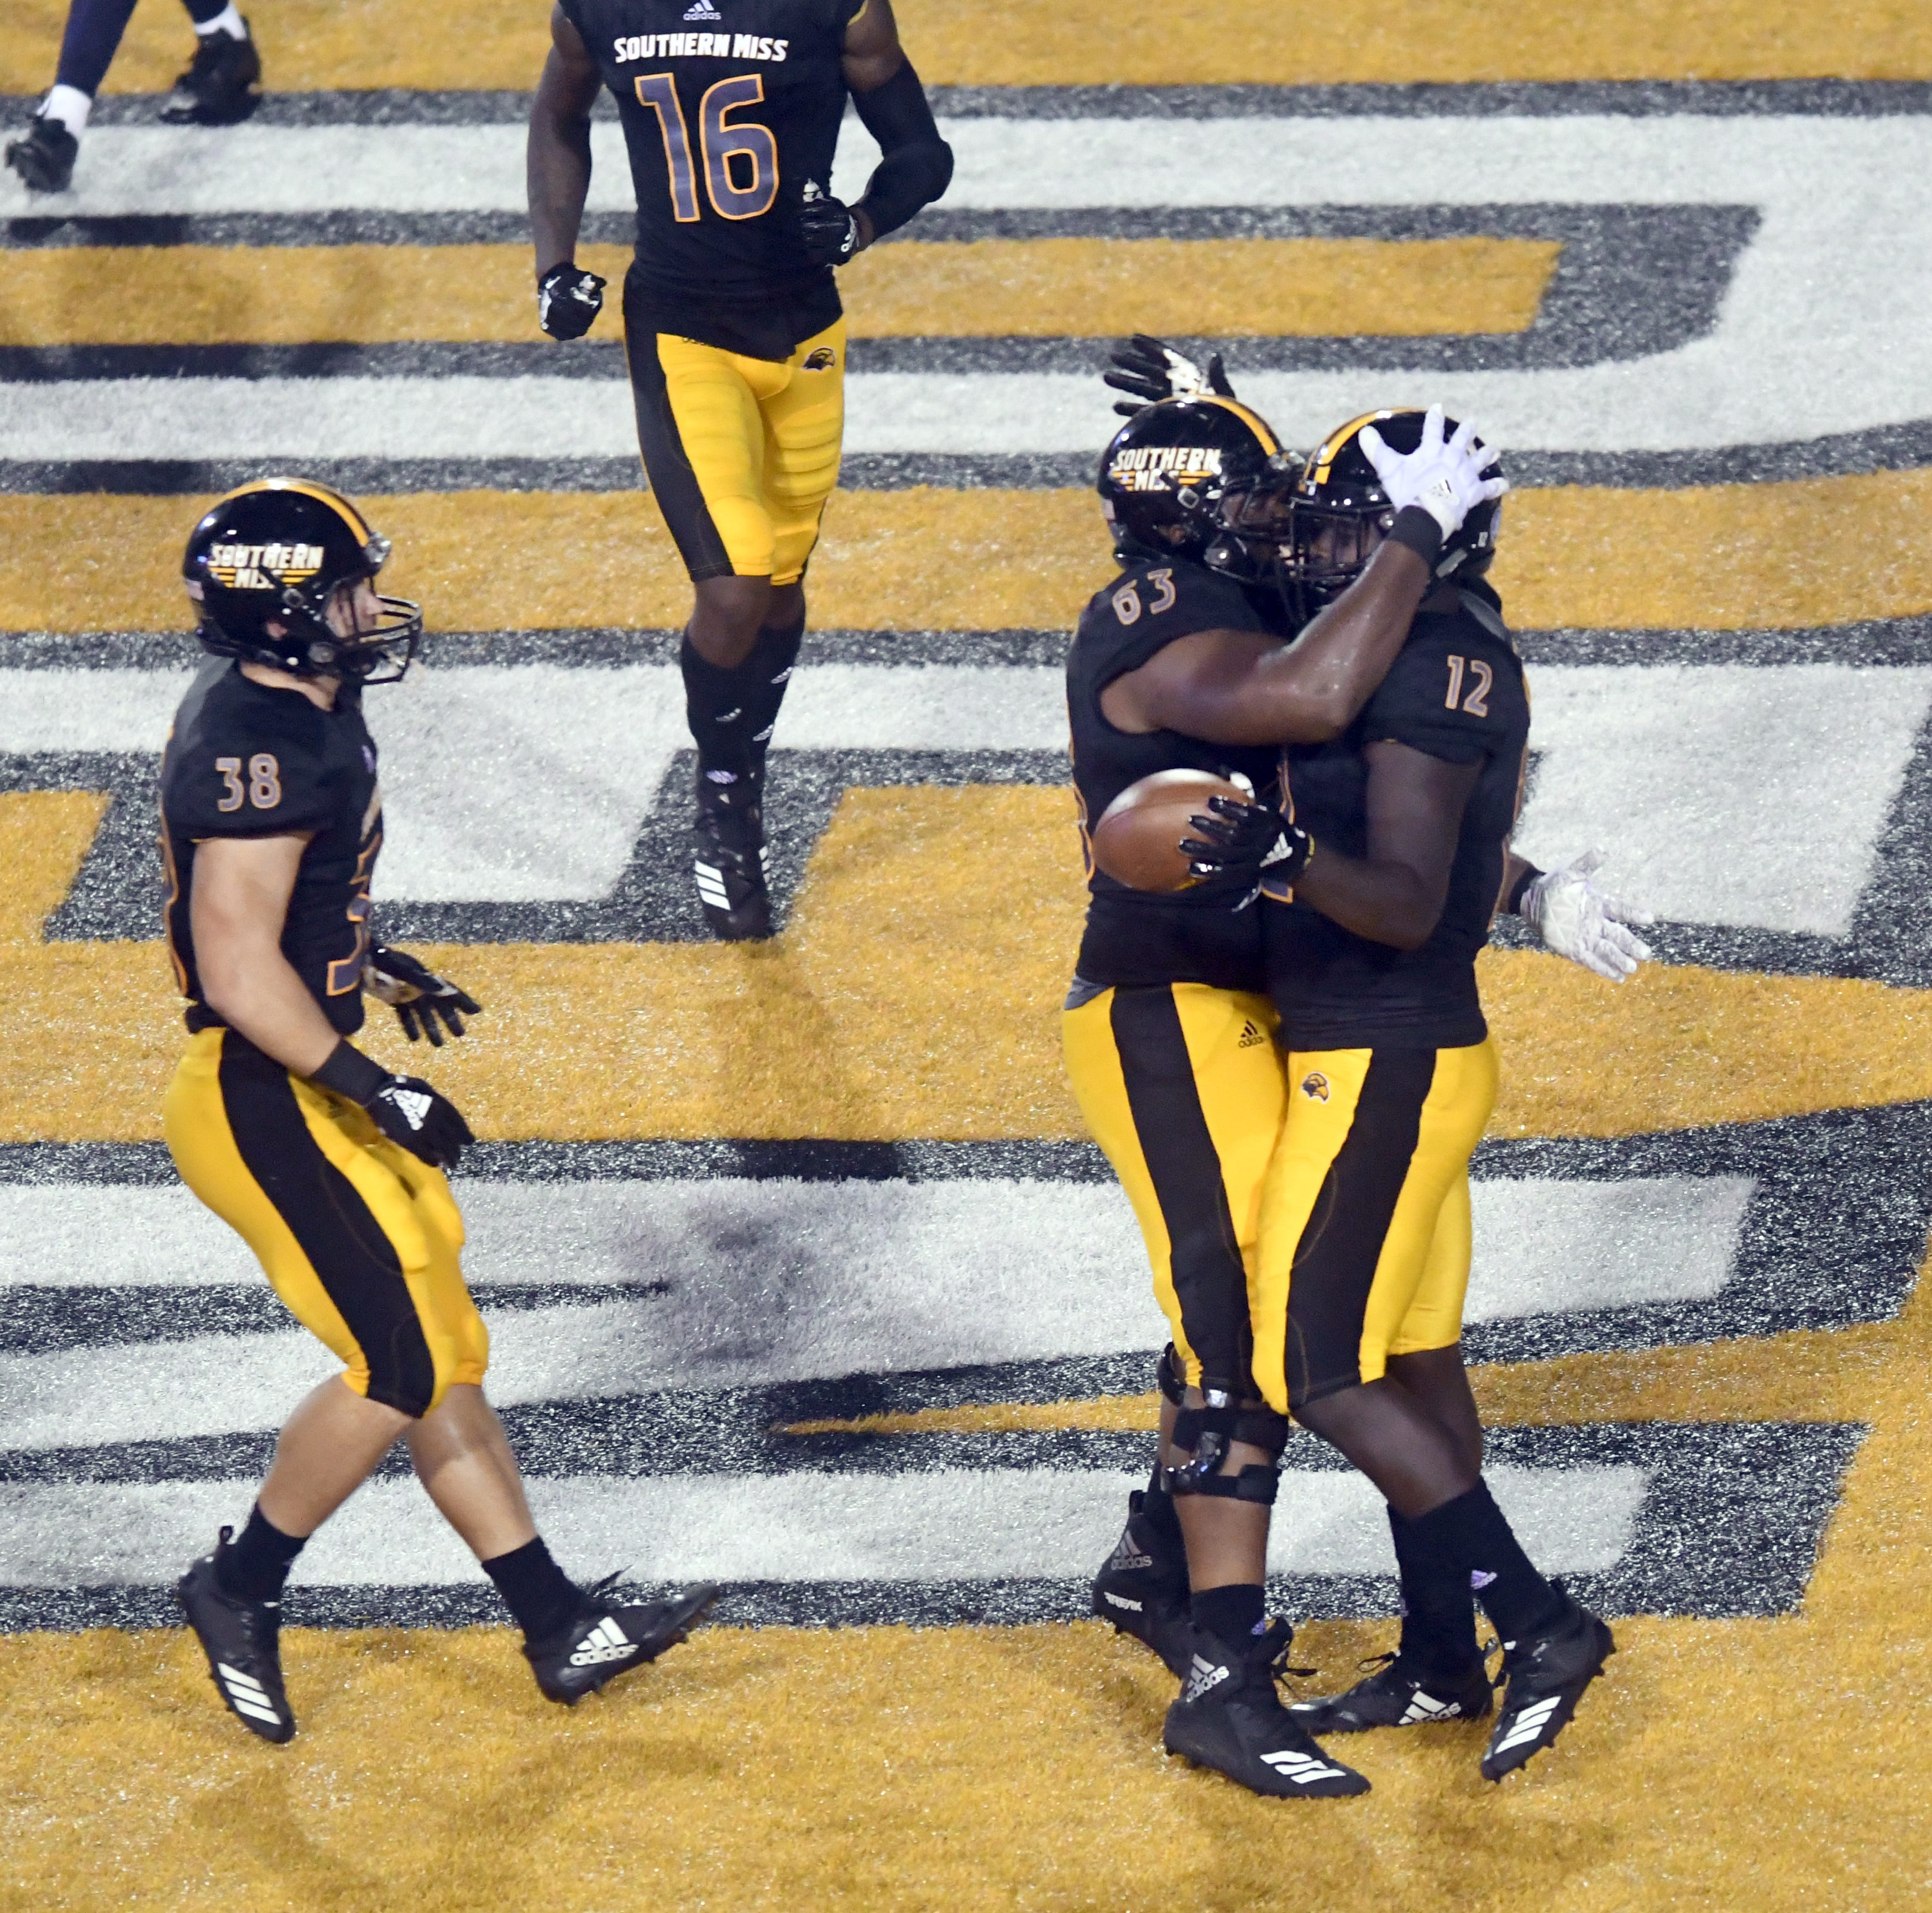 Southern Miss running back Steven Anderson scores a touchdown in a game against Rice at M.M. Roberts Stadium on Saturday, September 22, 2018.